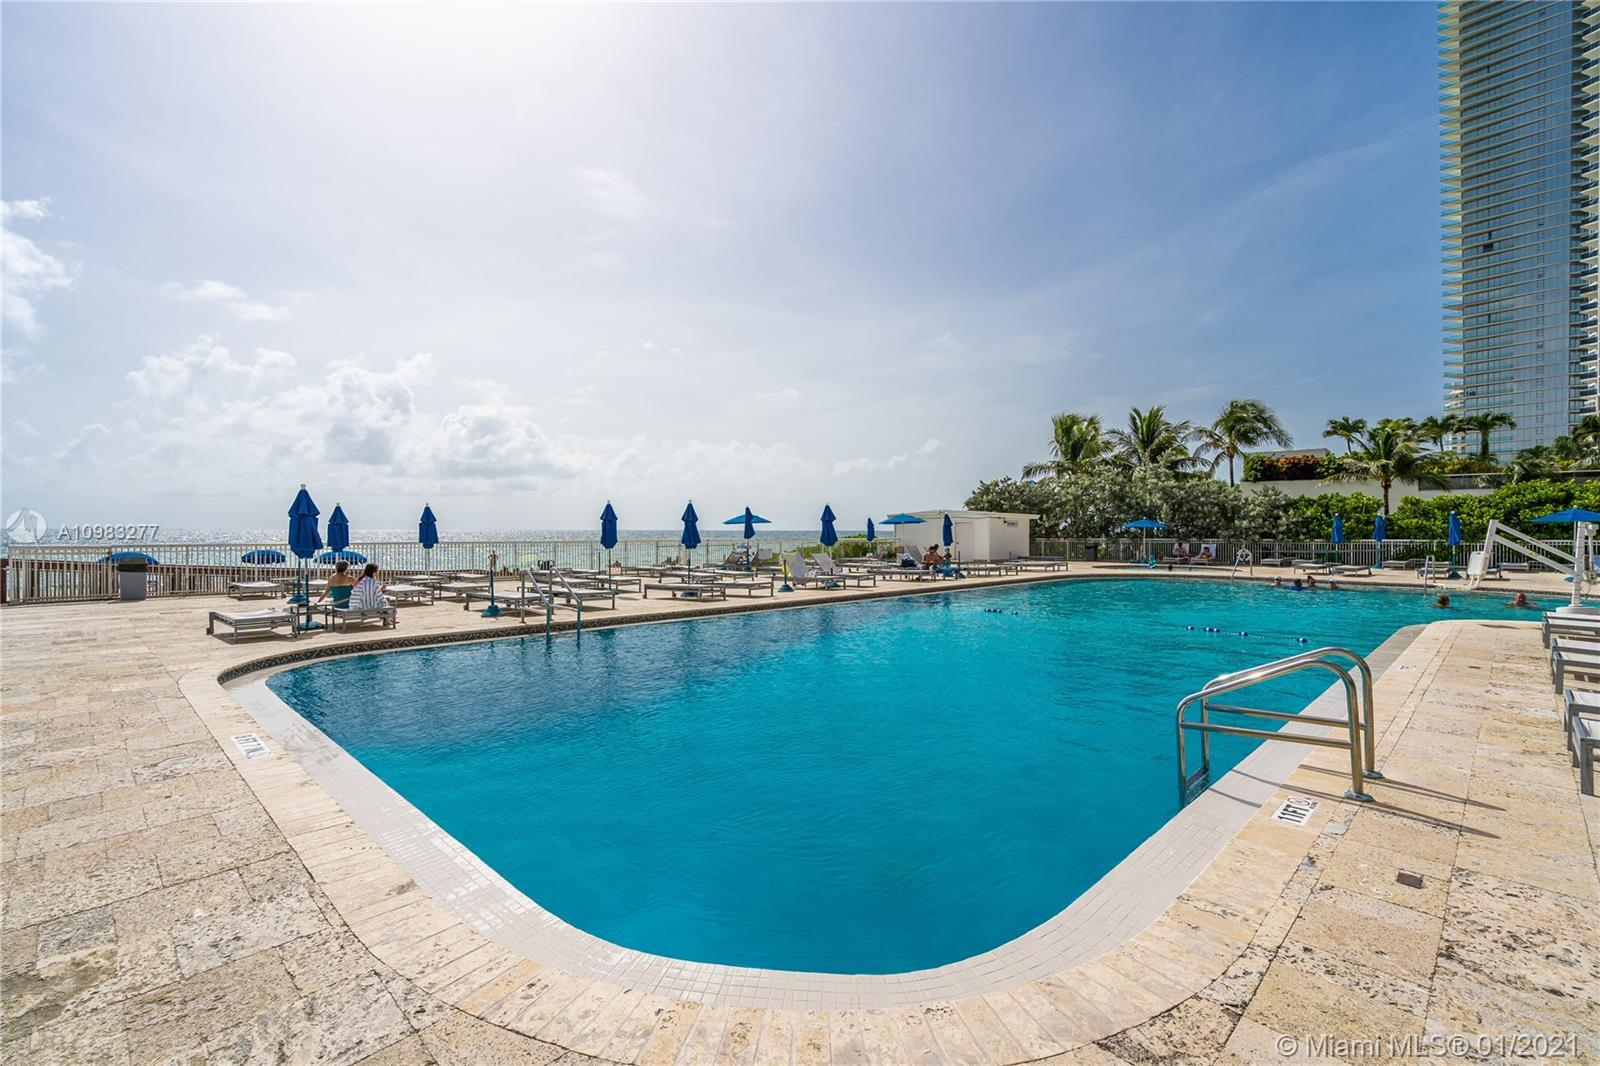 Must see this Condo. Amazing Deal. The Best Value Resort Style Studio in Famous Sunny Isles Beach. L